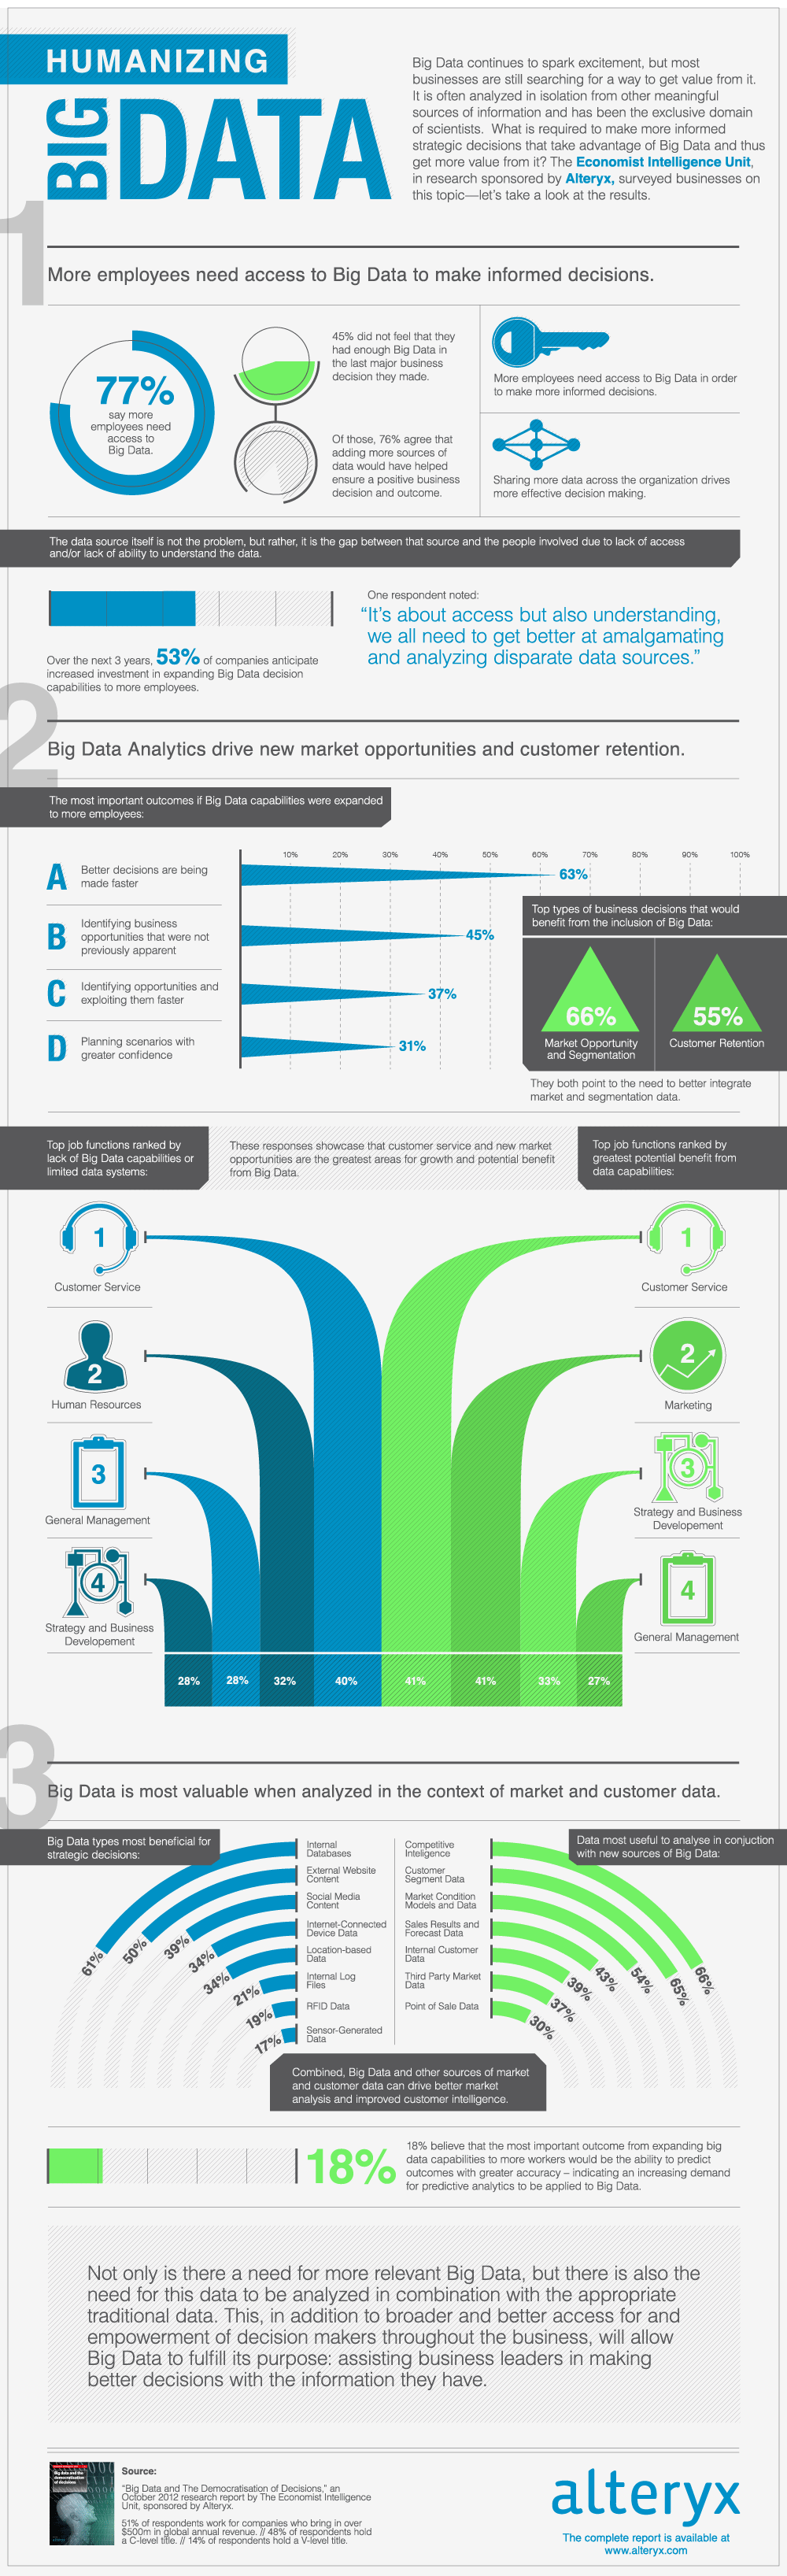 infographic-alteryx-data